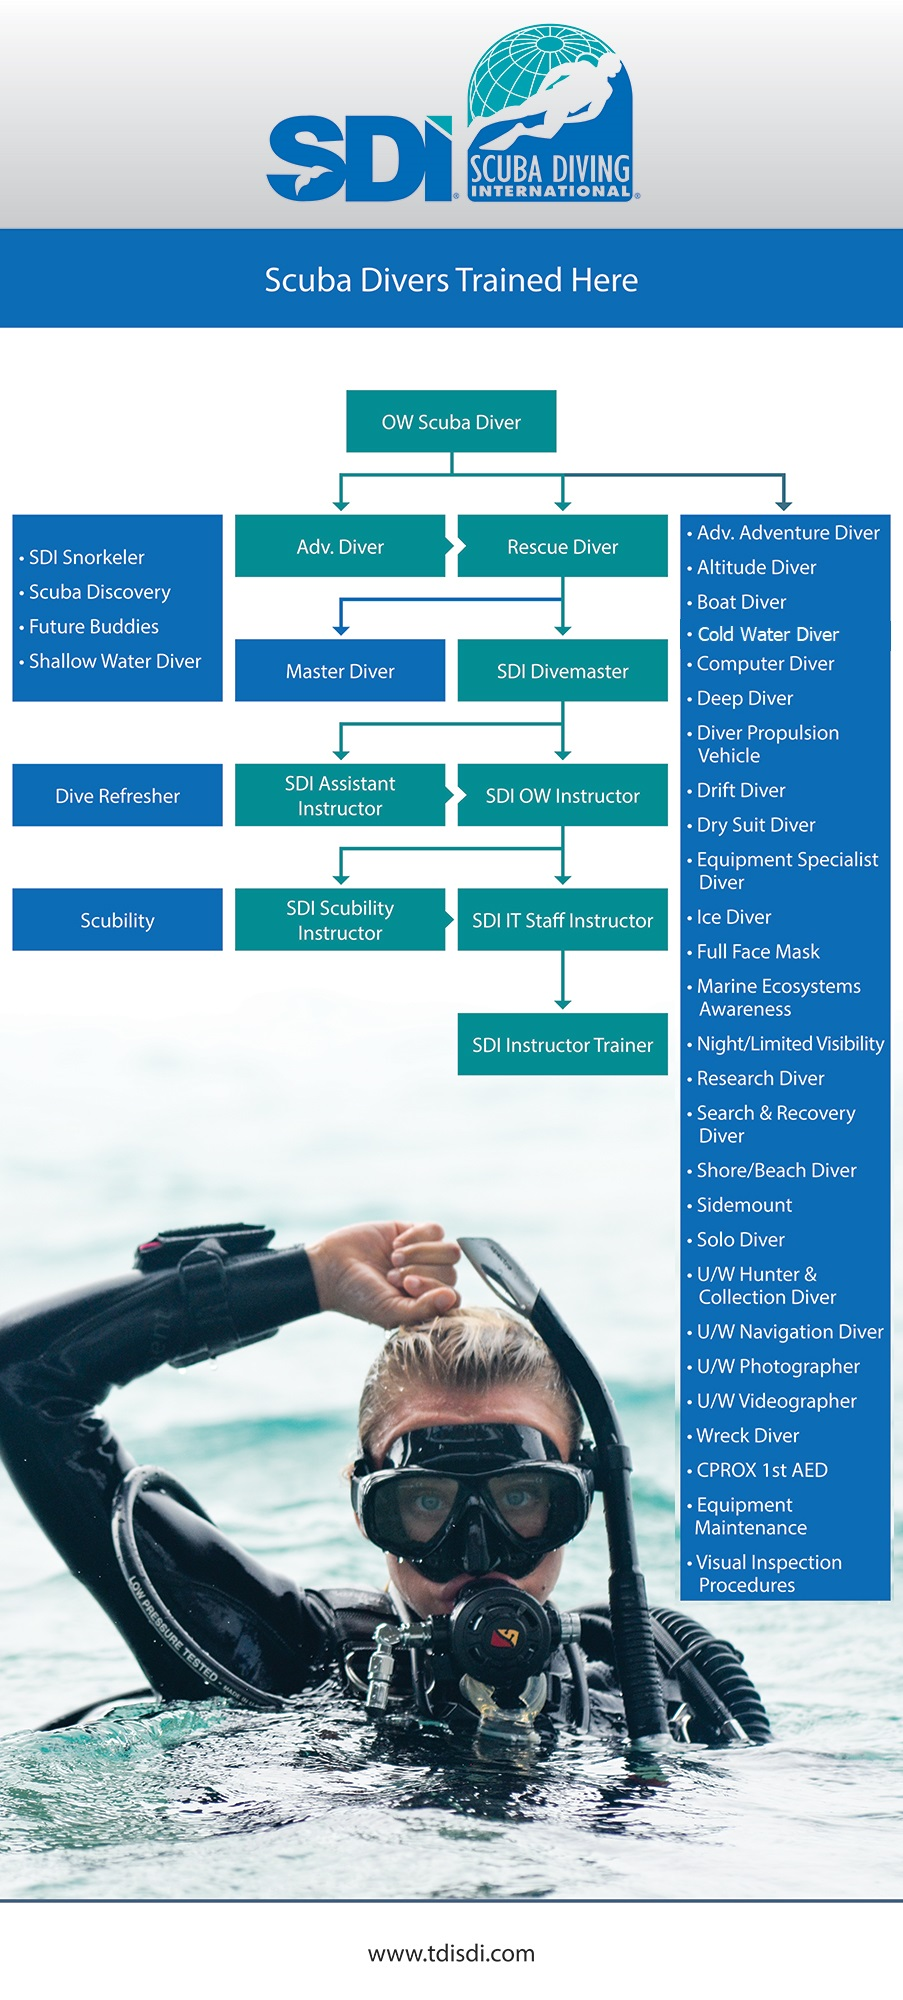 sdi-flowchart-banner-0913-web-with-cold-water-diver.jpg